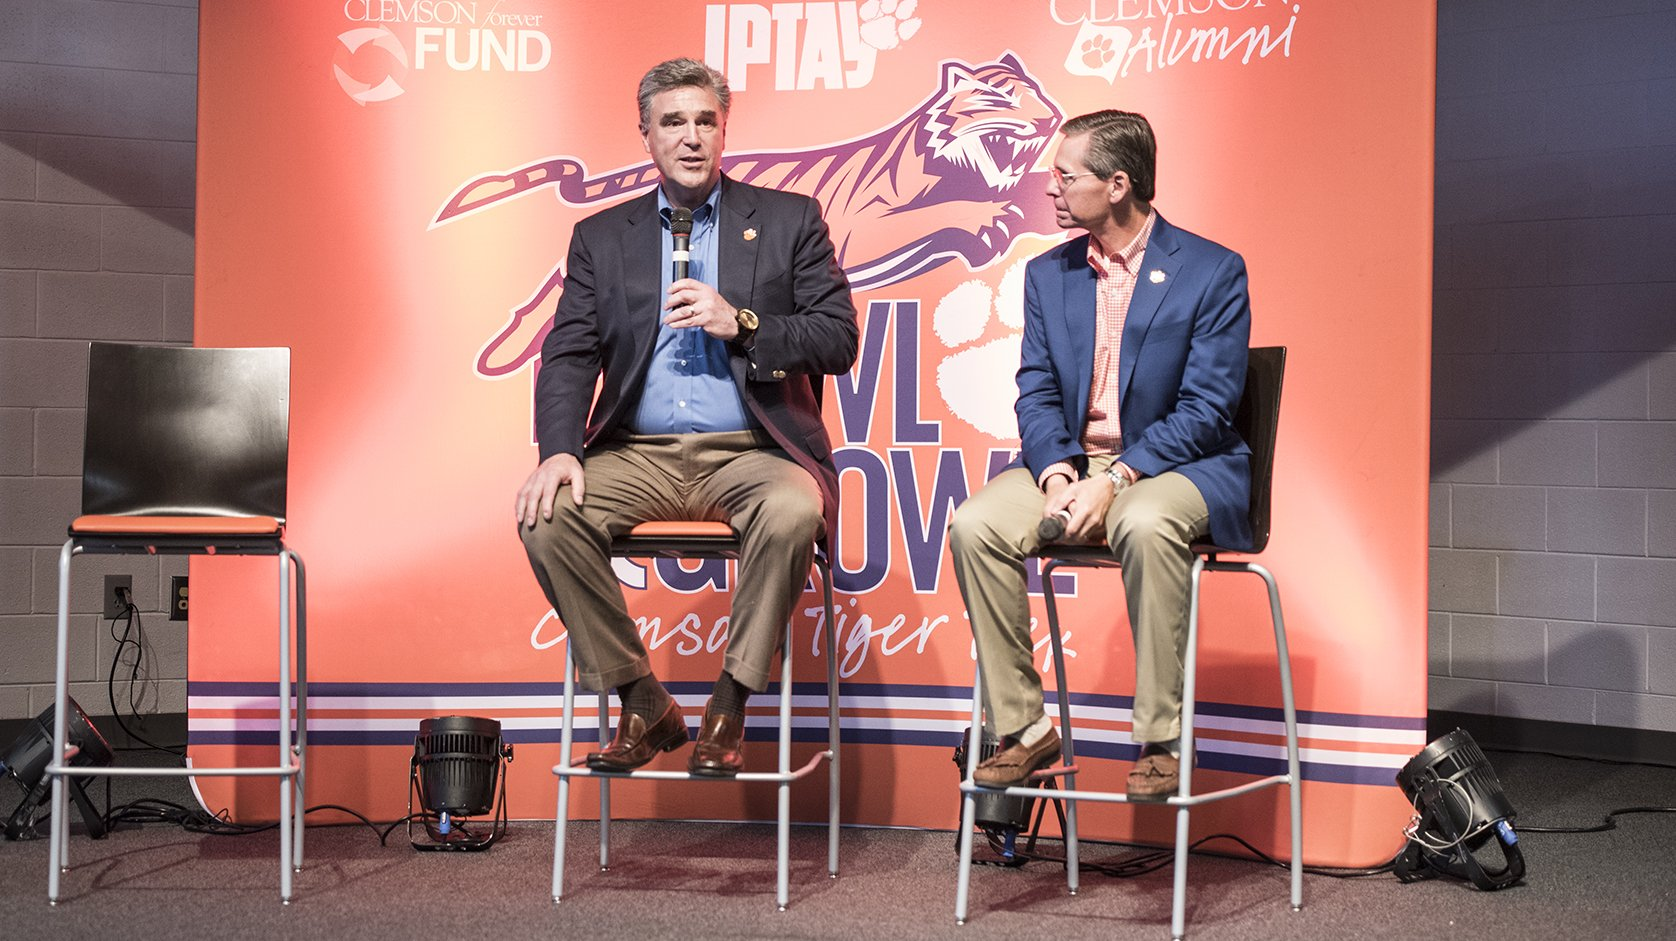 """Great things are happening throughout #Clemson, athletically, academically & from a facilities standpoint."" - @ClemsonDRad at Aiken P&G https://t.co/bNyJrfOcmW"